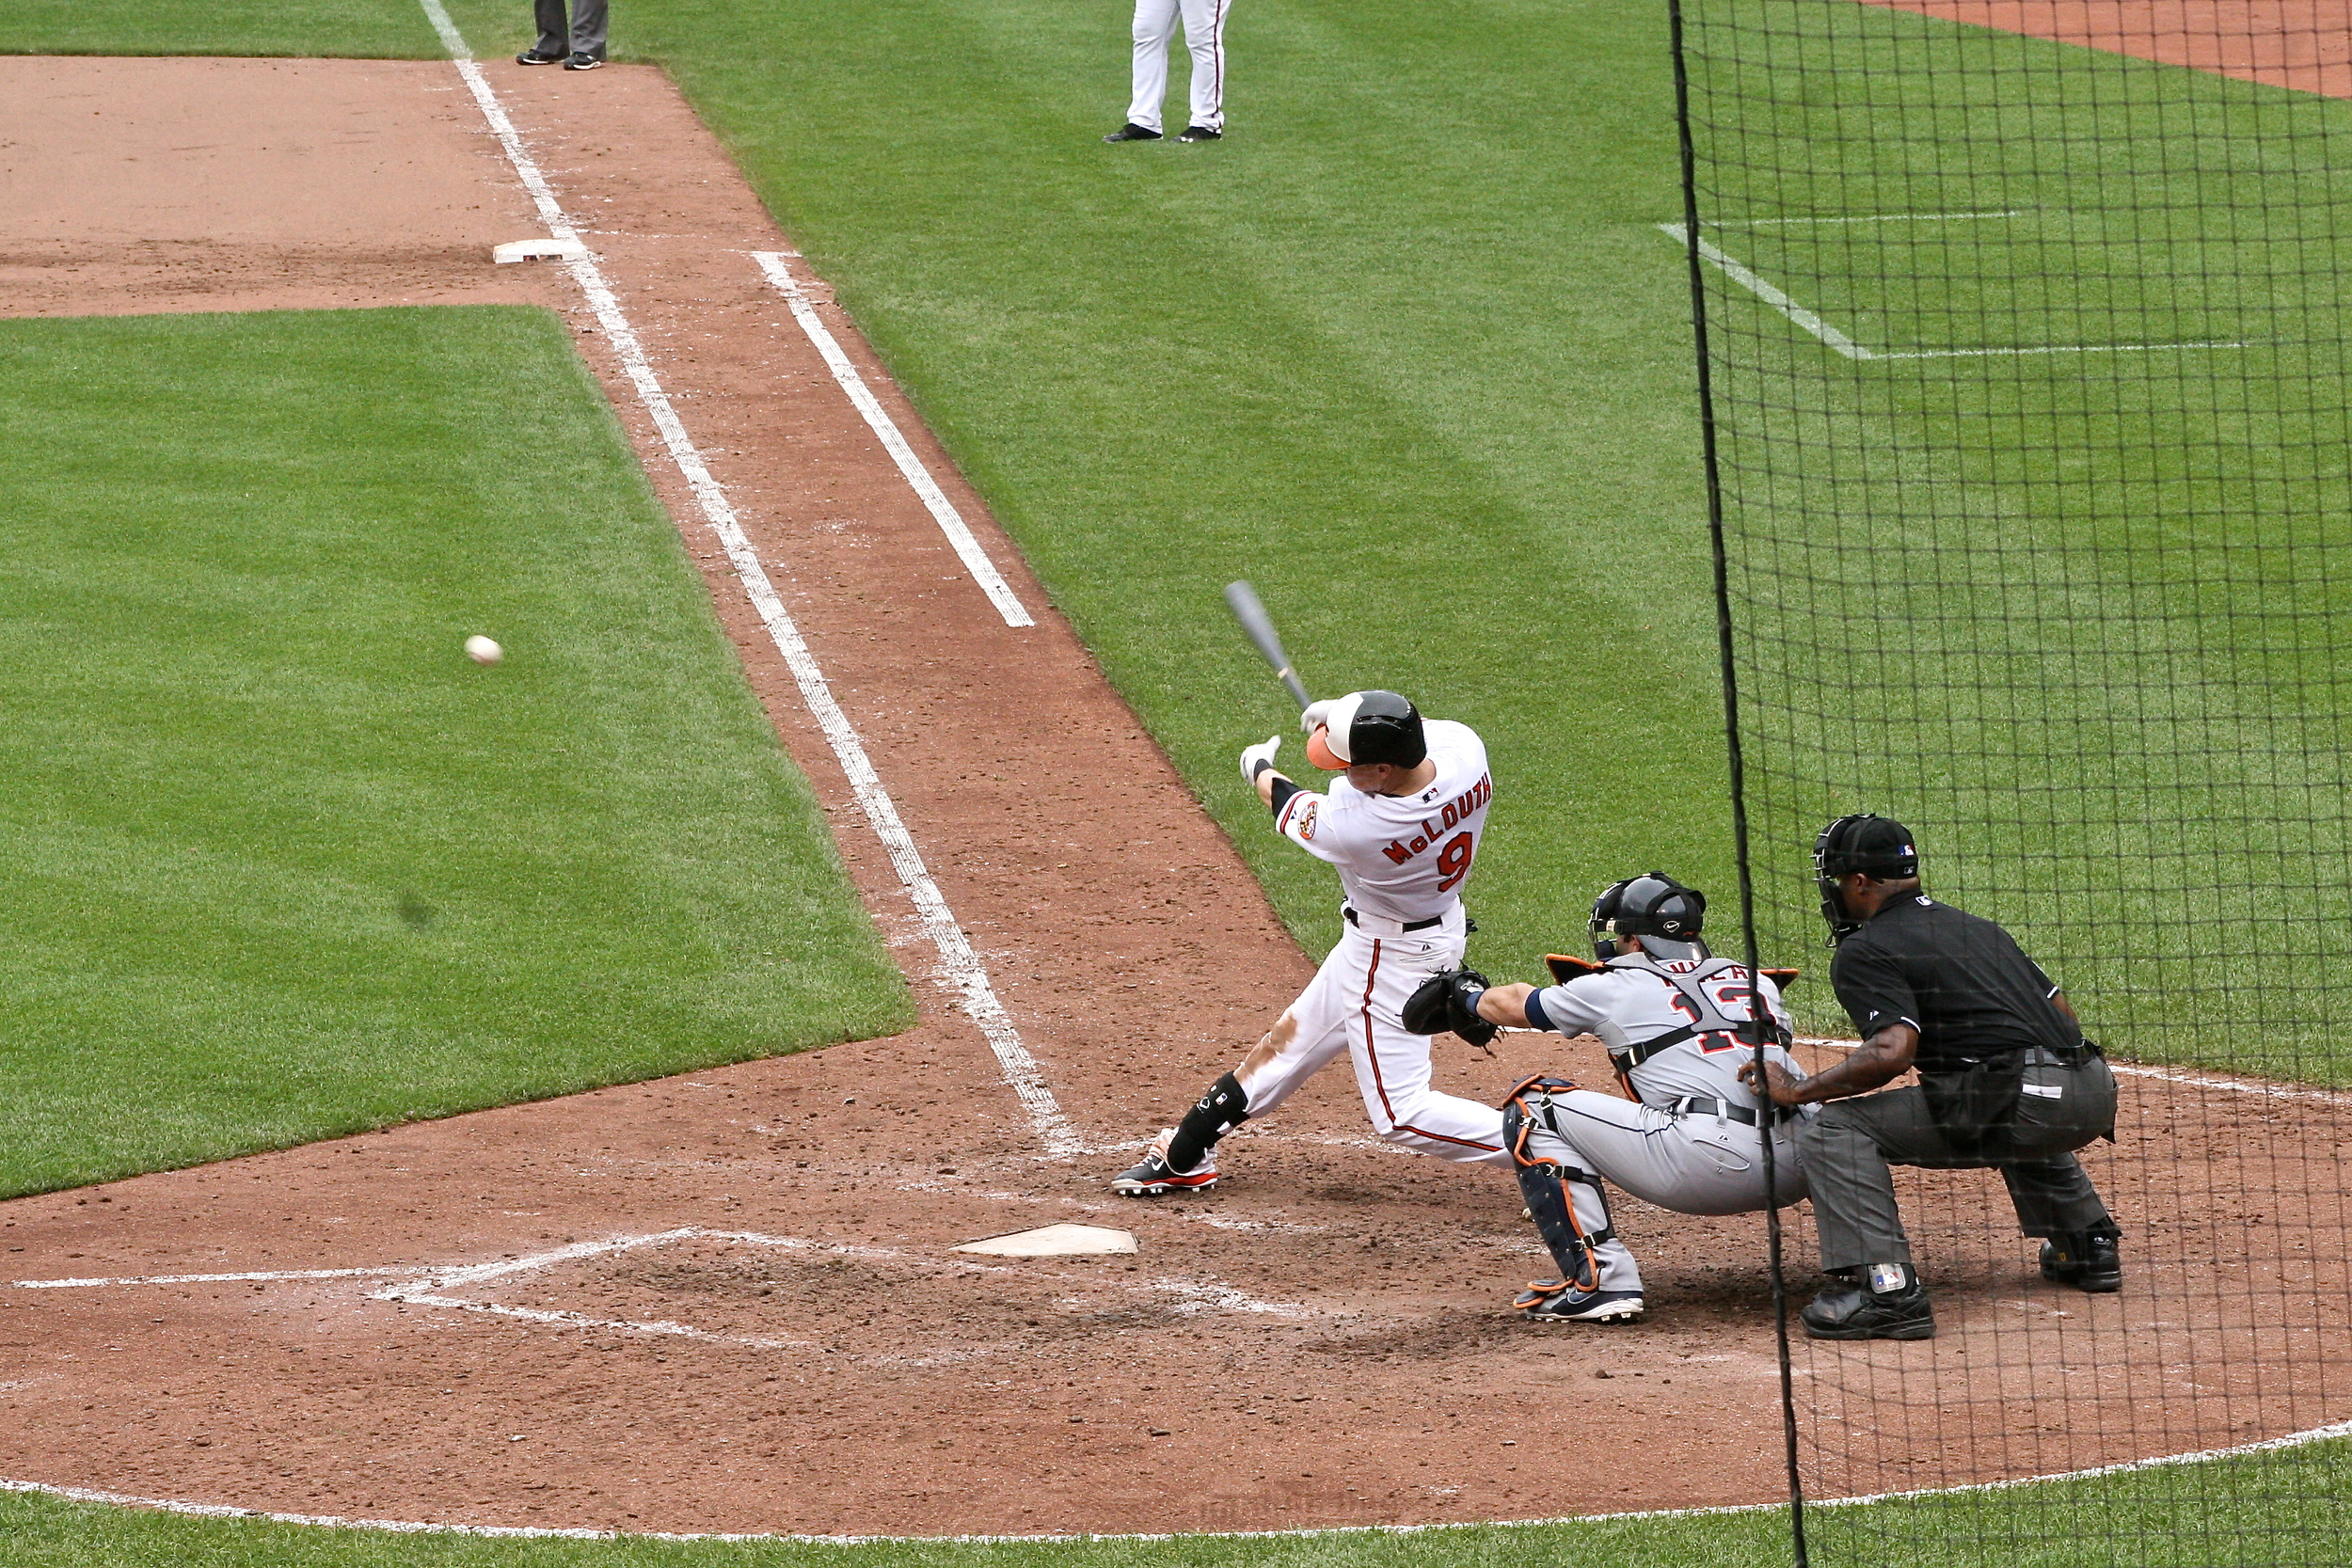 Nate McLouth knocks in the go-ahead run in the 7th